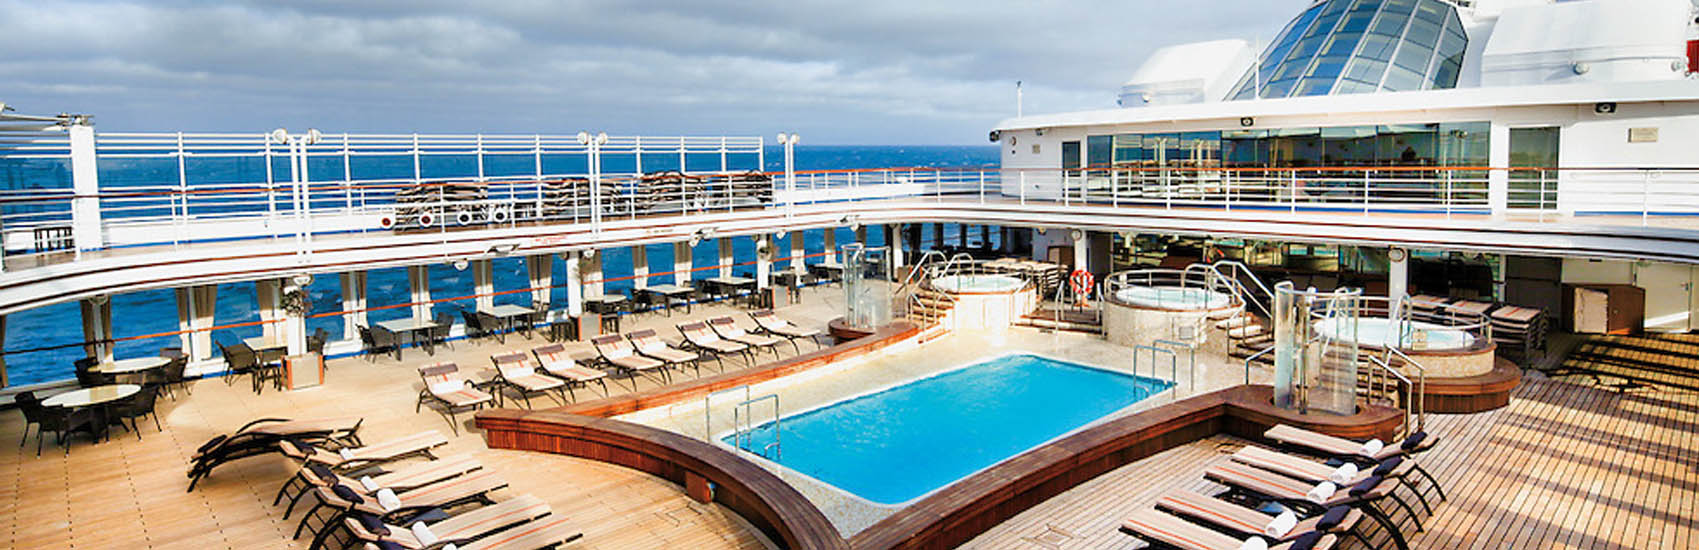 Get More Caribbean with Silversea Cruises 3